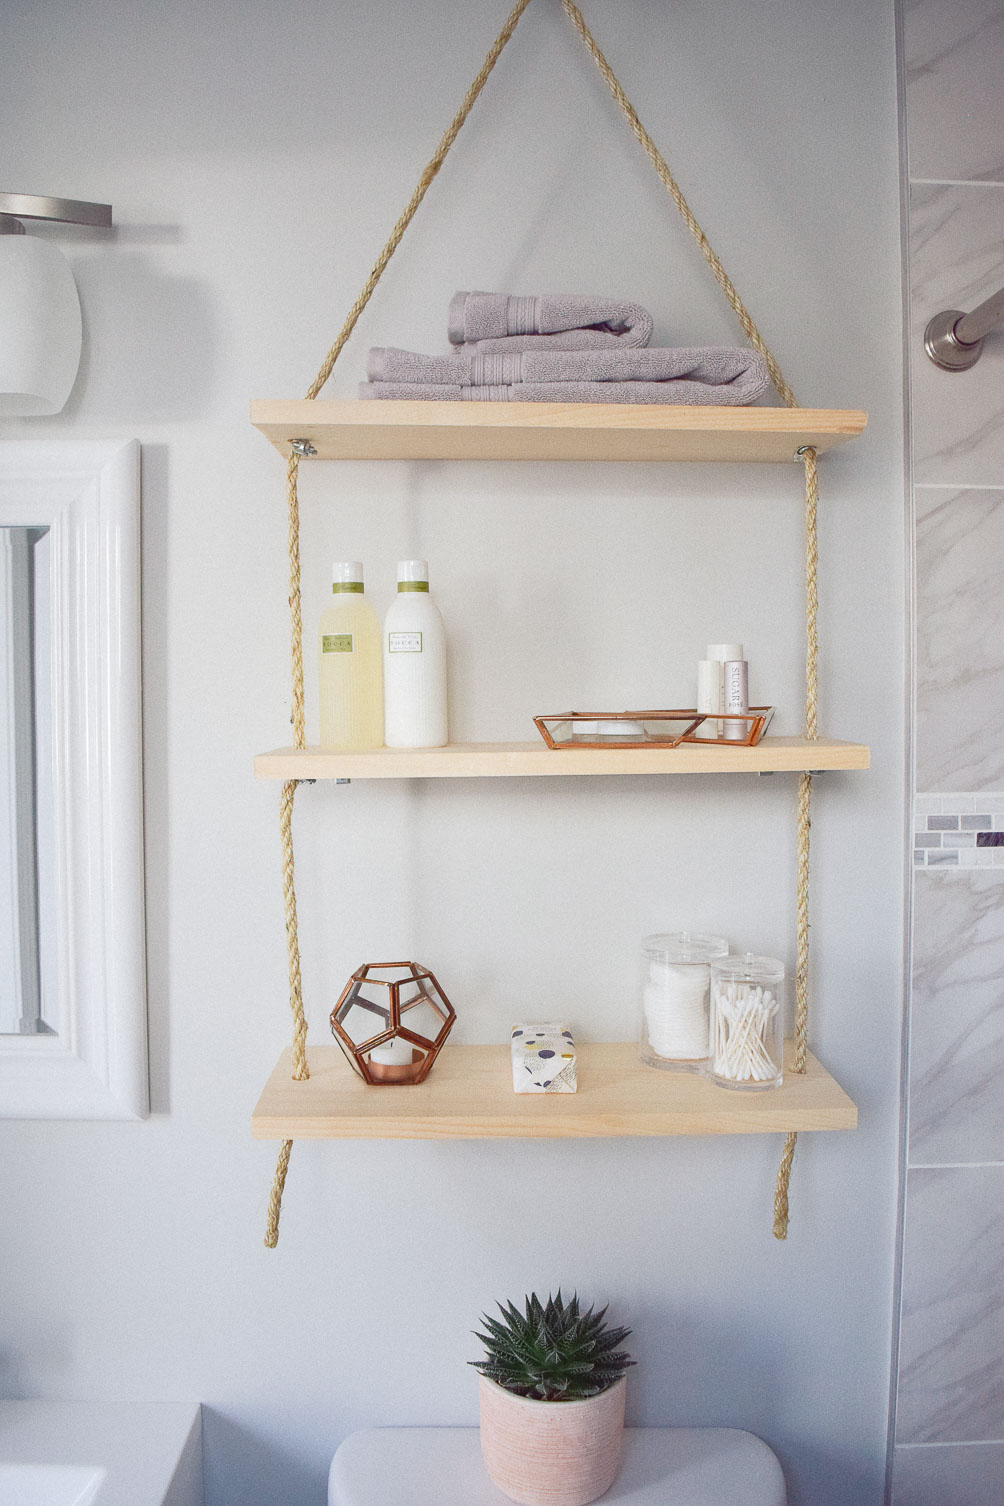 diy hanging shelves - One Brass Fox